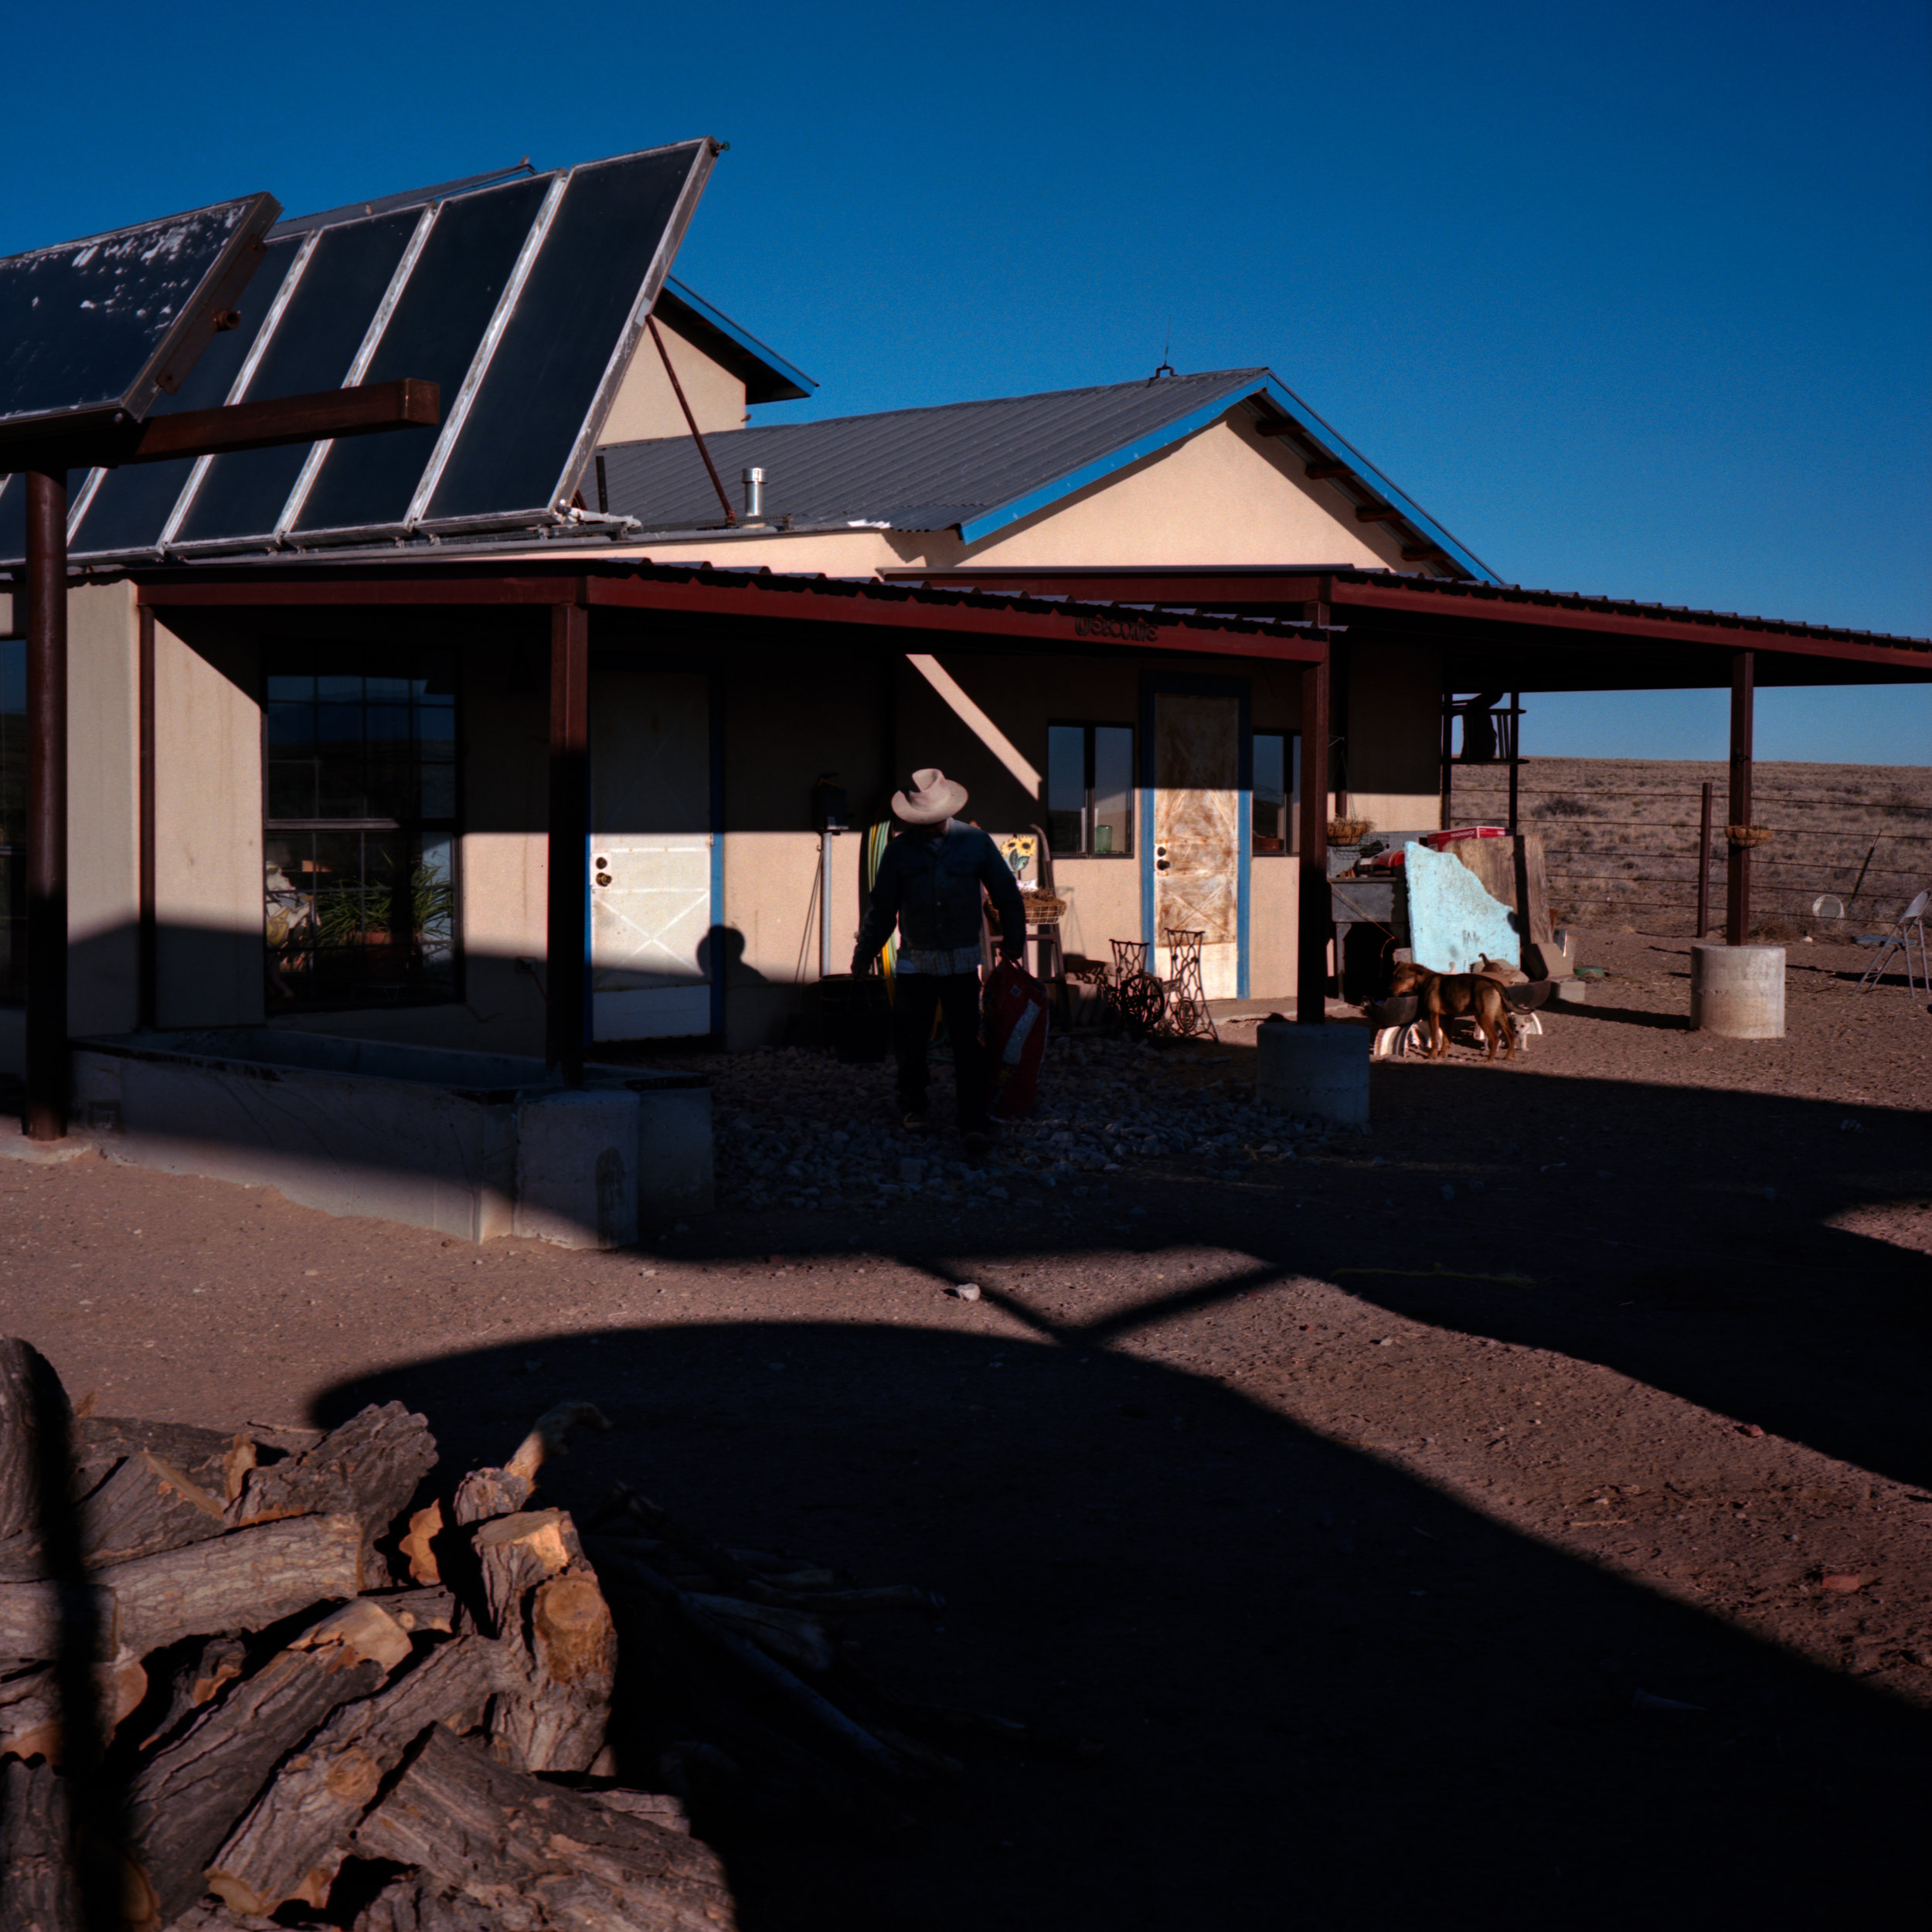 """Carlos Proffit outside of his home in Pajarito Mesa, New Mexico, USA on Feb. 15, 2011. Mr. Proffit moved to the Mesa """"to escape the rent cycle,"""" and then built his own home. He slowly learned to install and in some cases build solar and wind solutions for his home over the course of many years."""